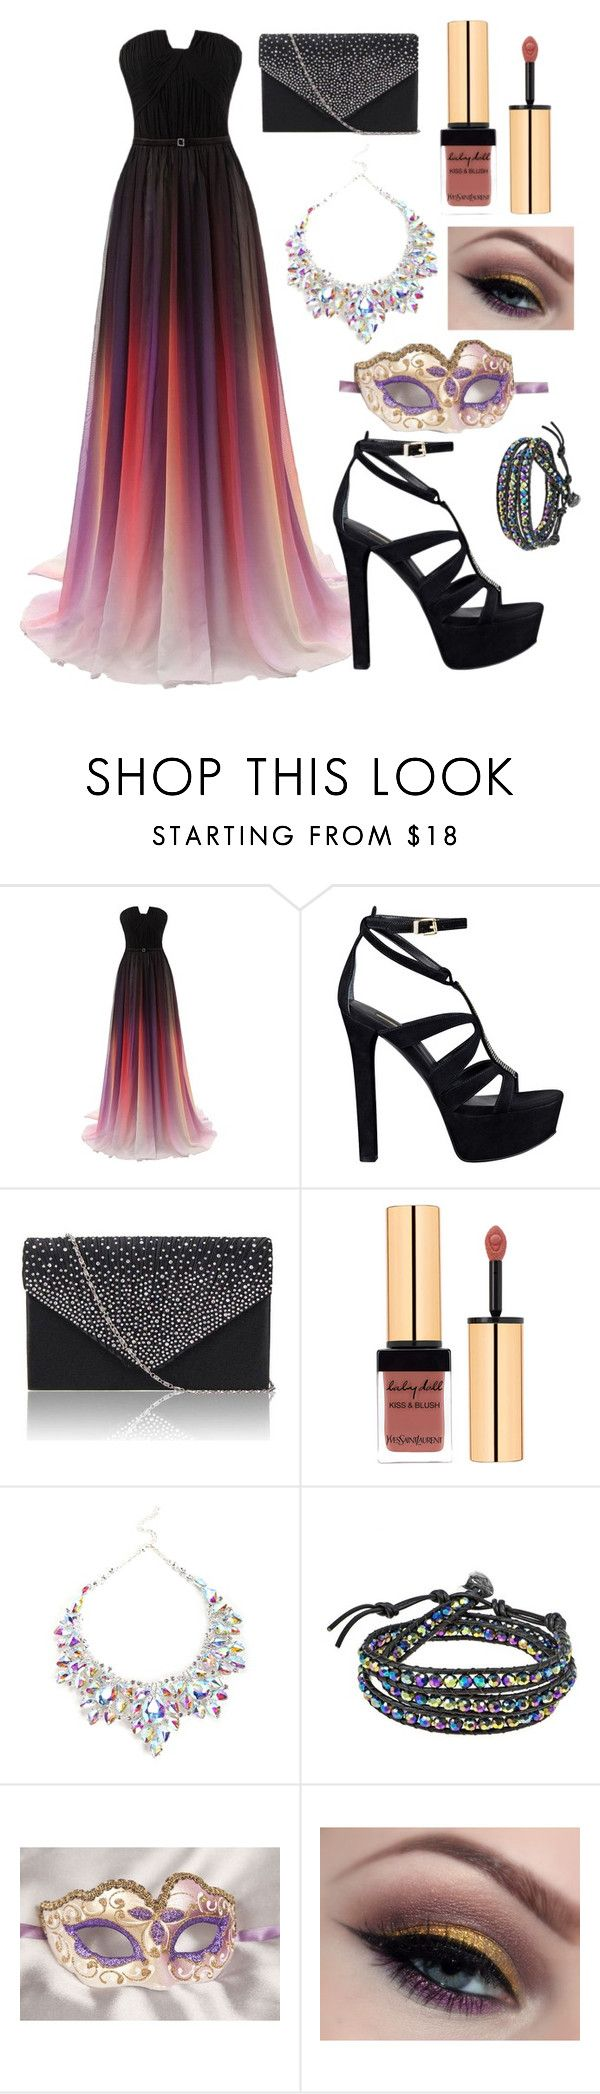 """""""masquerade ball"""" by winternightfrostbite ❤ liked on Polyvore featuring GUESS, AeraVida, Masquerade, women's clothing, women, female, woman, misses and juniors"""